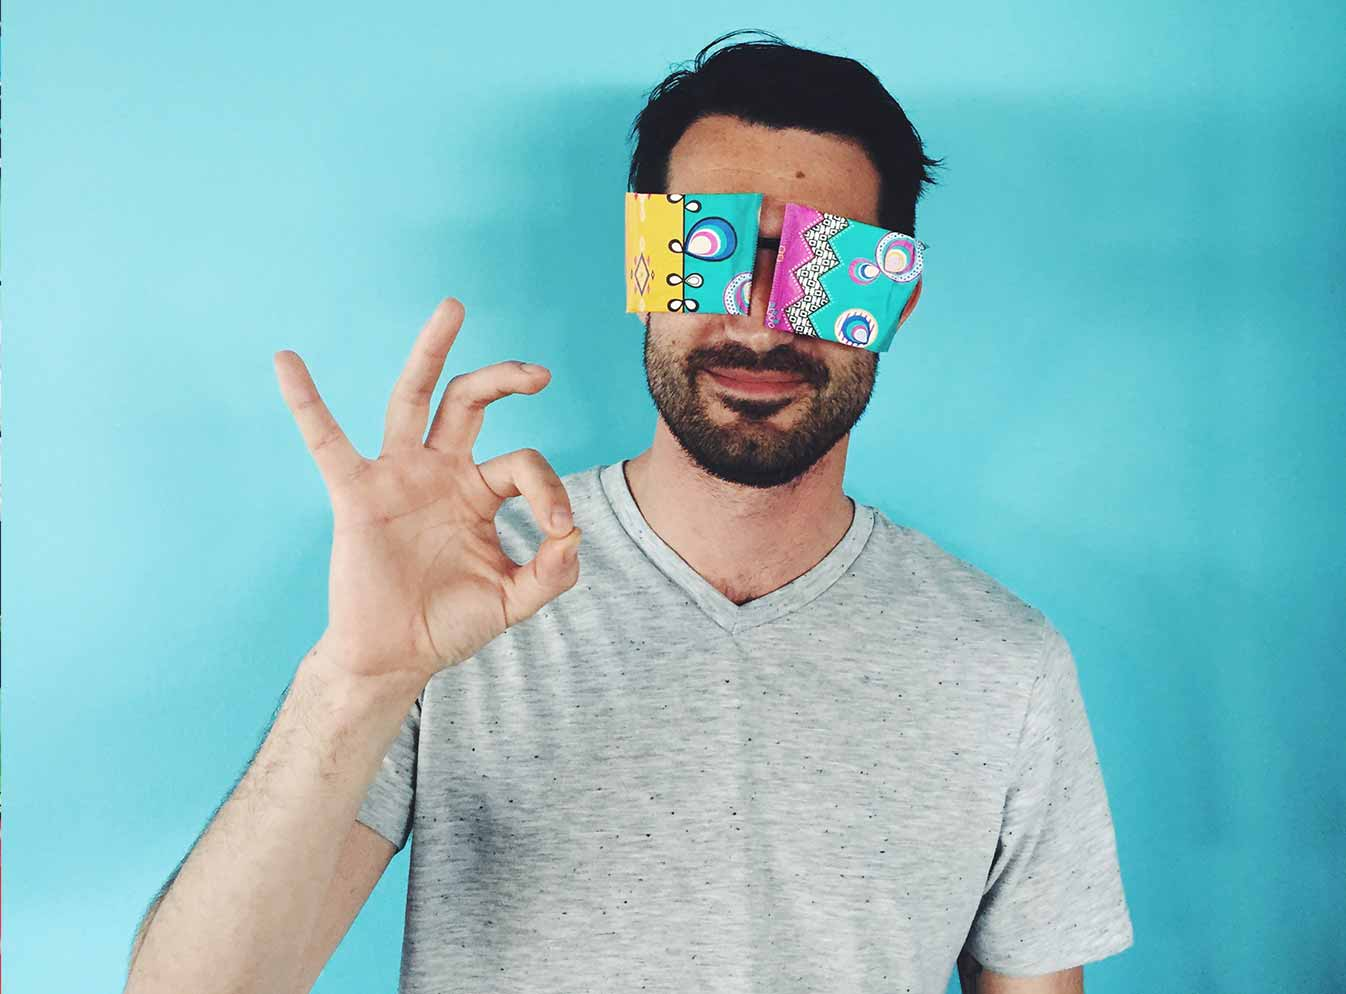 Man making OK sign with hand with liners over eyes